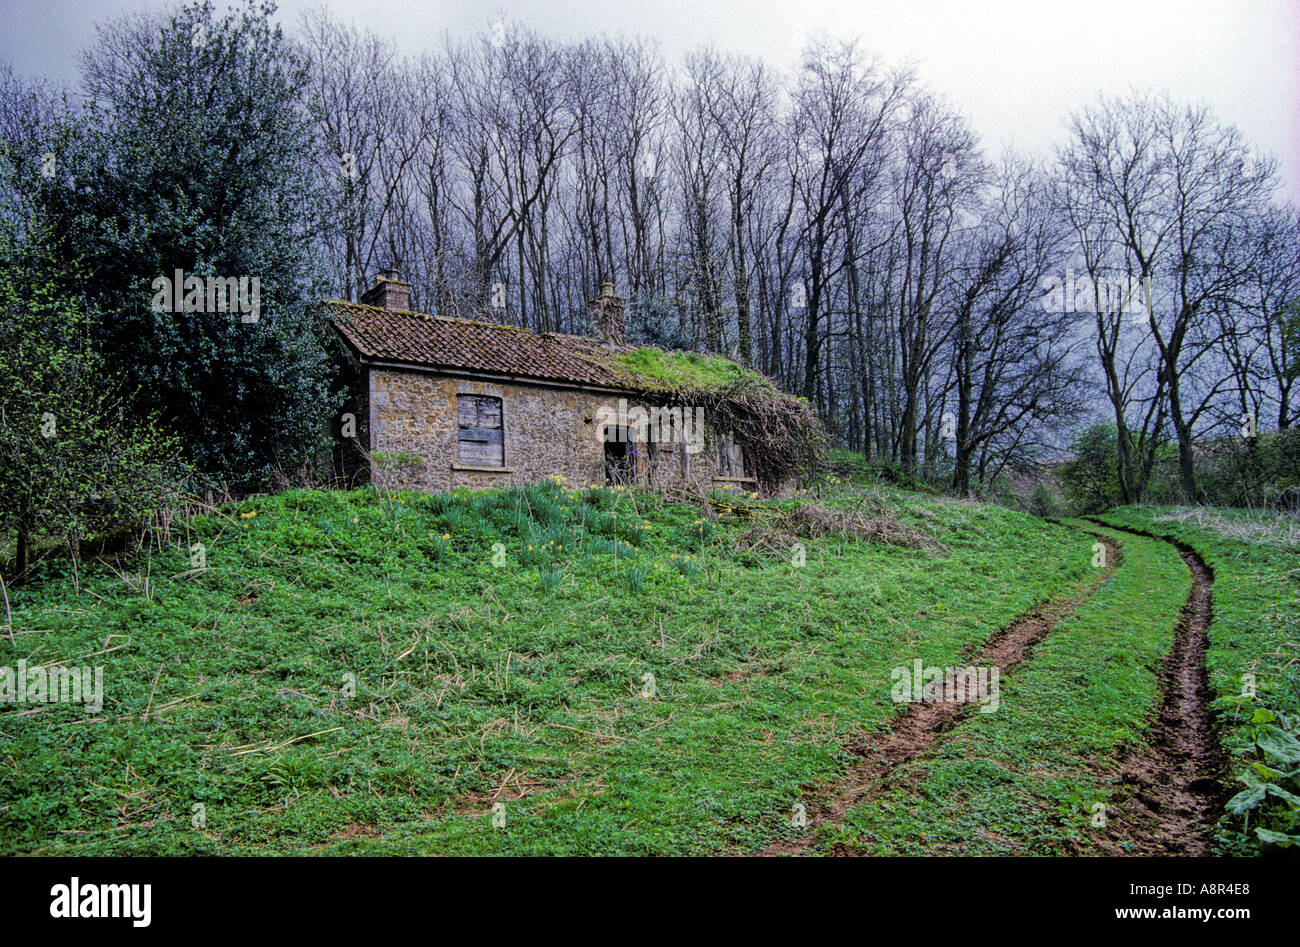 The Way Through the Woods. Deserted stone cottage - Stock Image